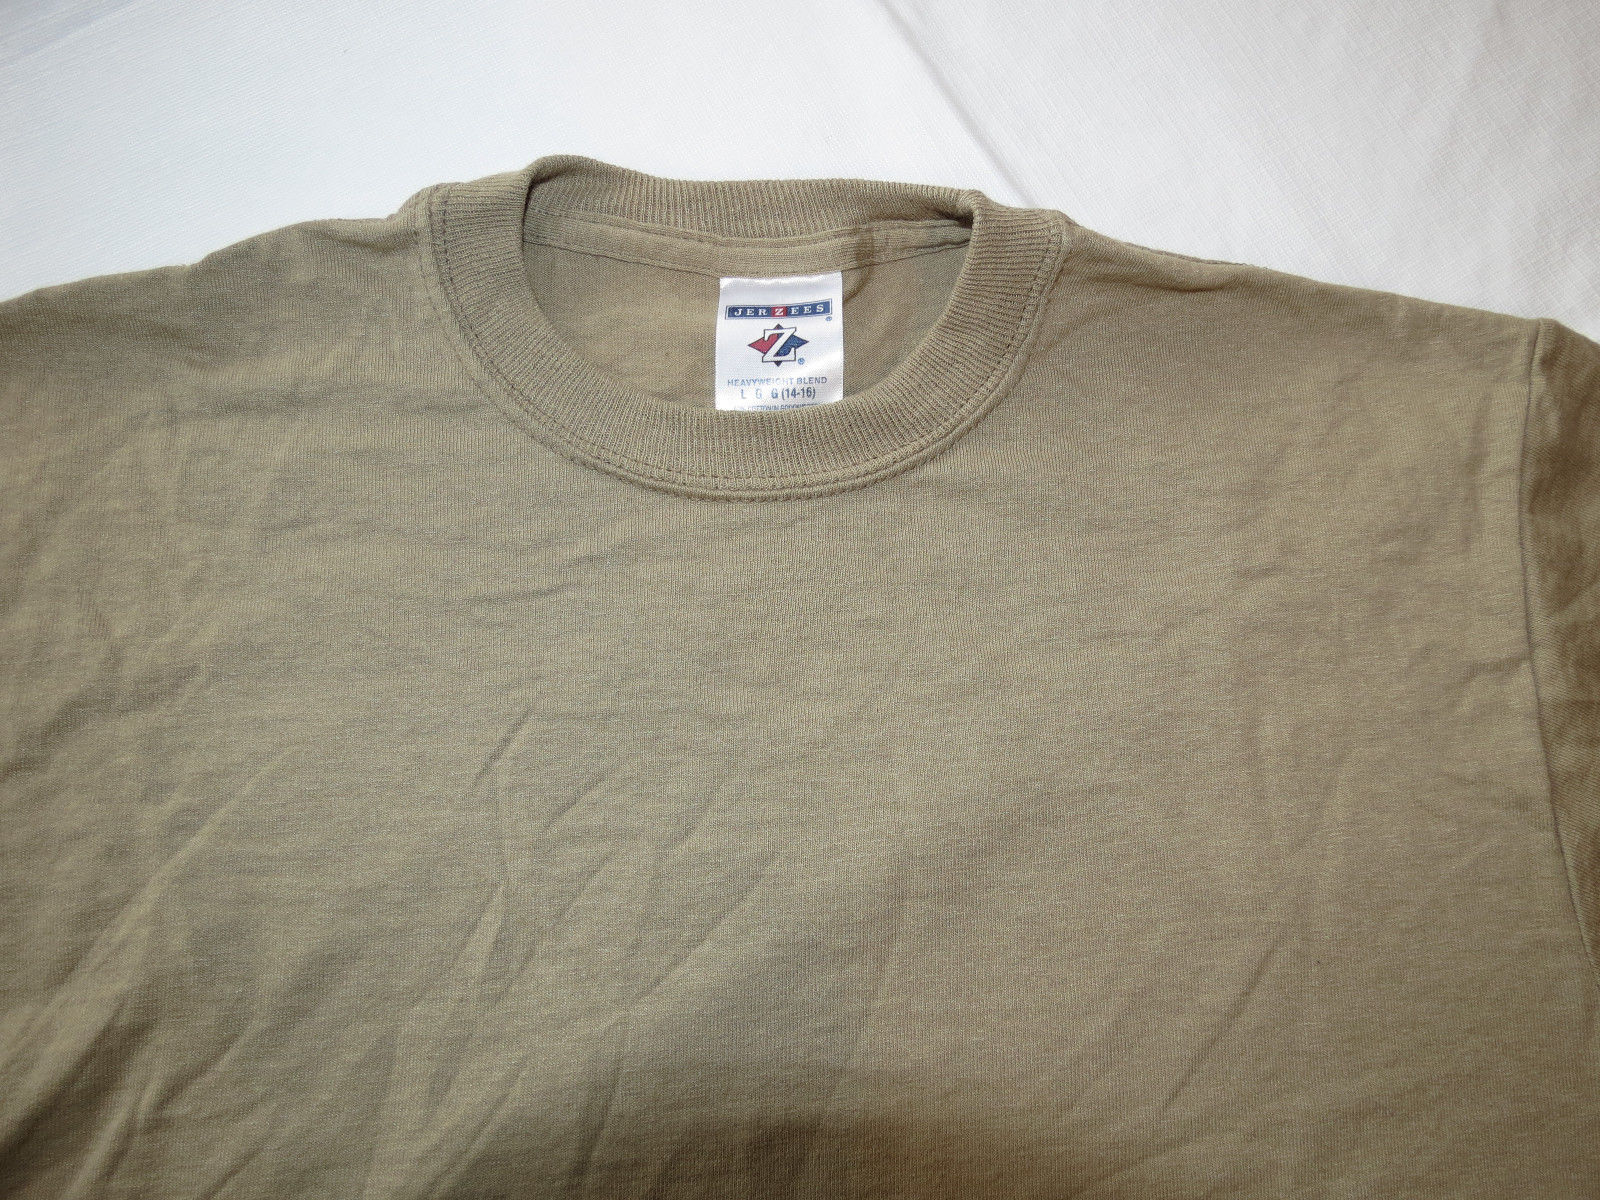 Boys youth Jerzees Heavyweight Blend short sleeve t shirt Khaki L 14-16 NWOT